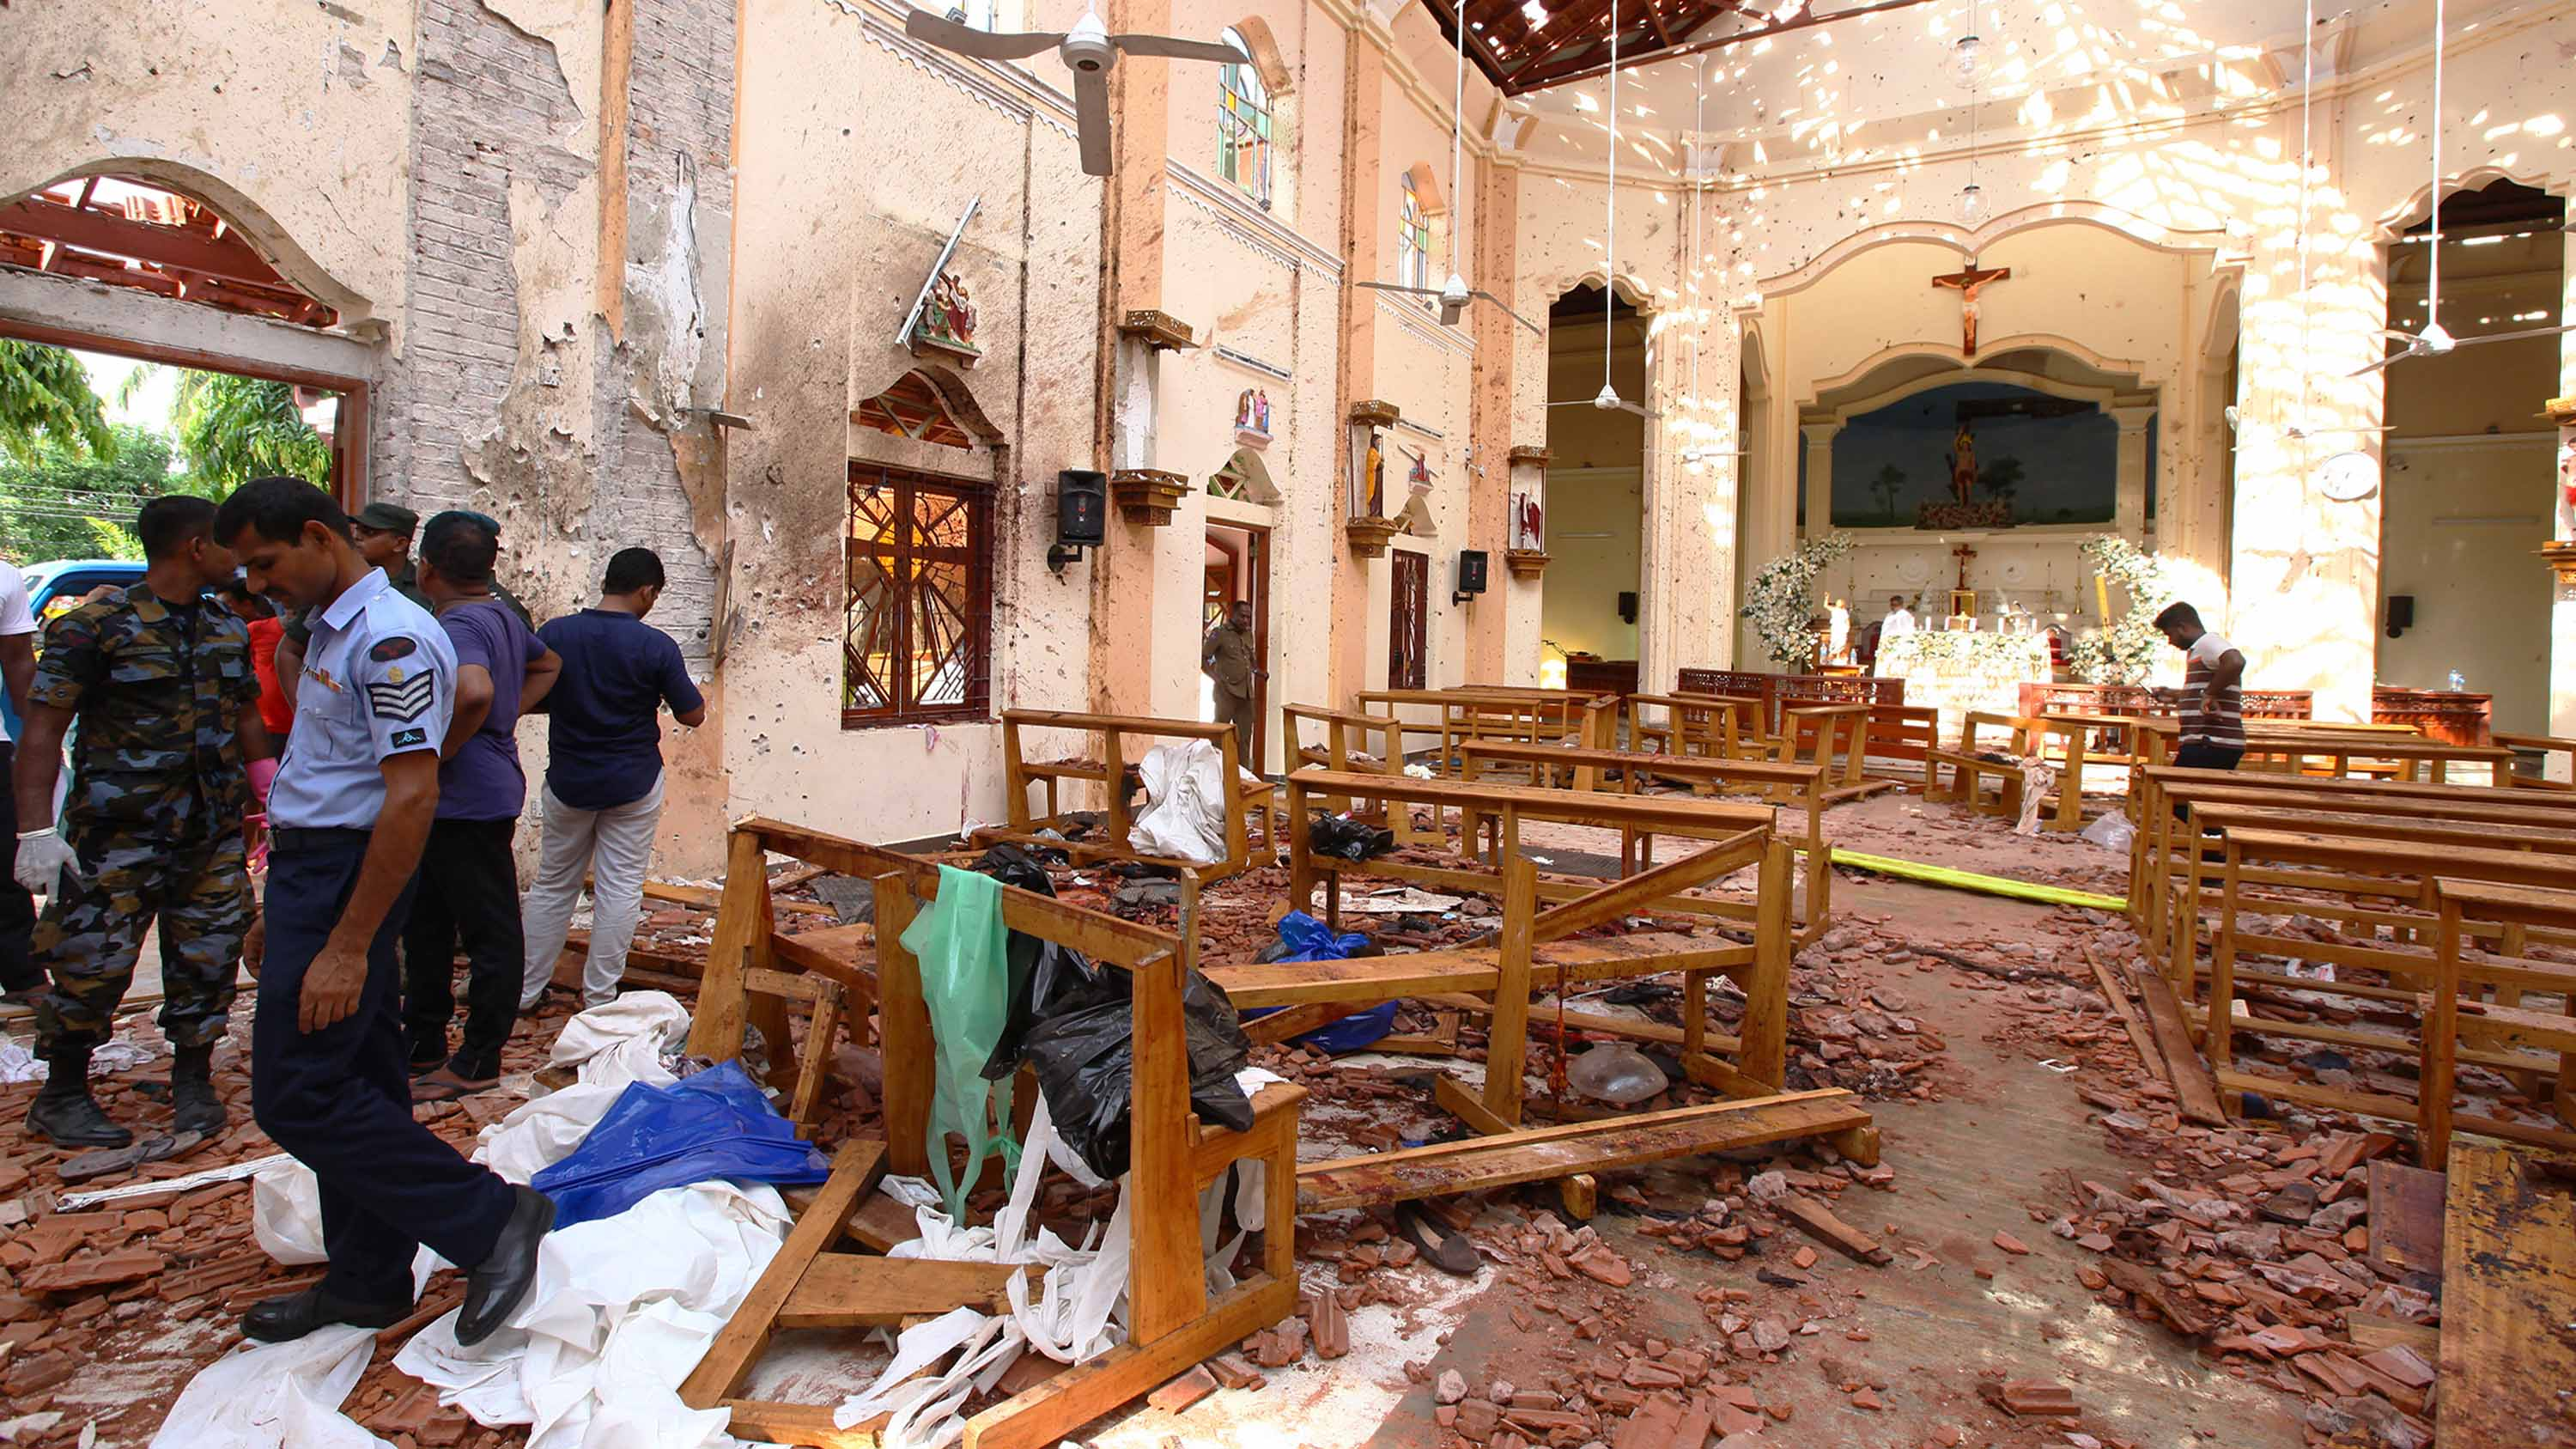 Terror Attacks In Sri Lanka On Easter Sunday Leave At Least 290 Dead, 500 Injured